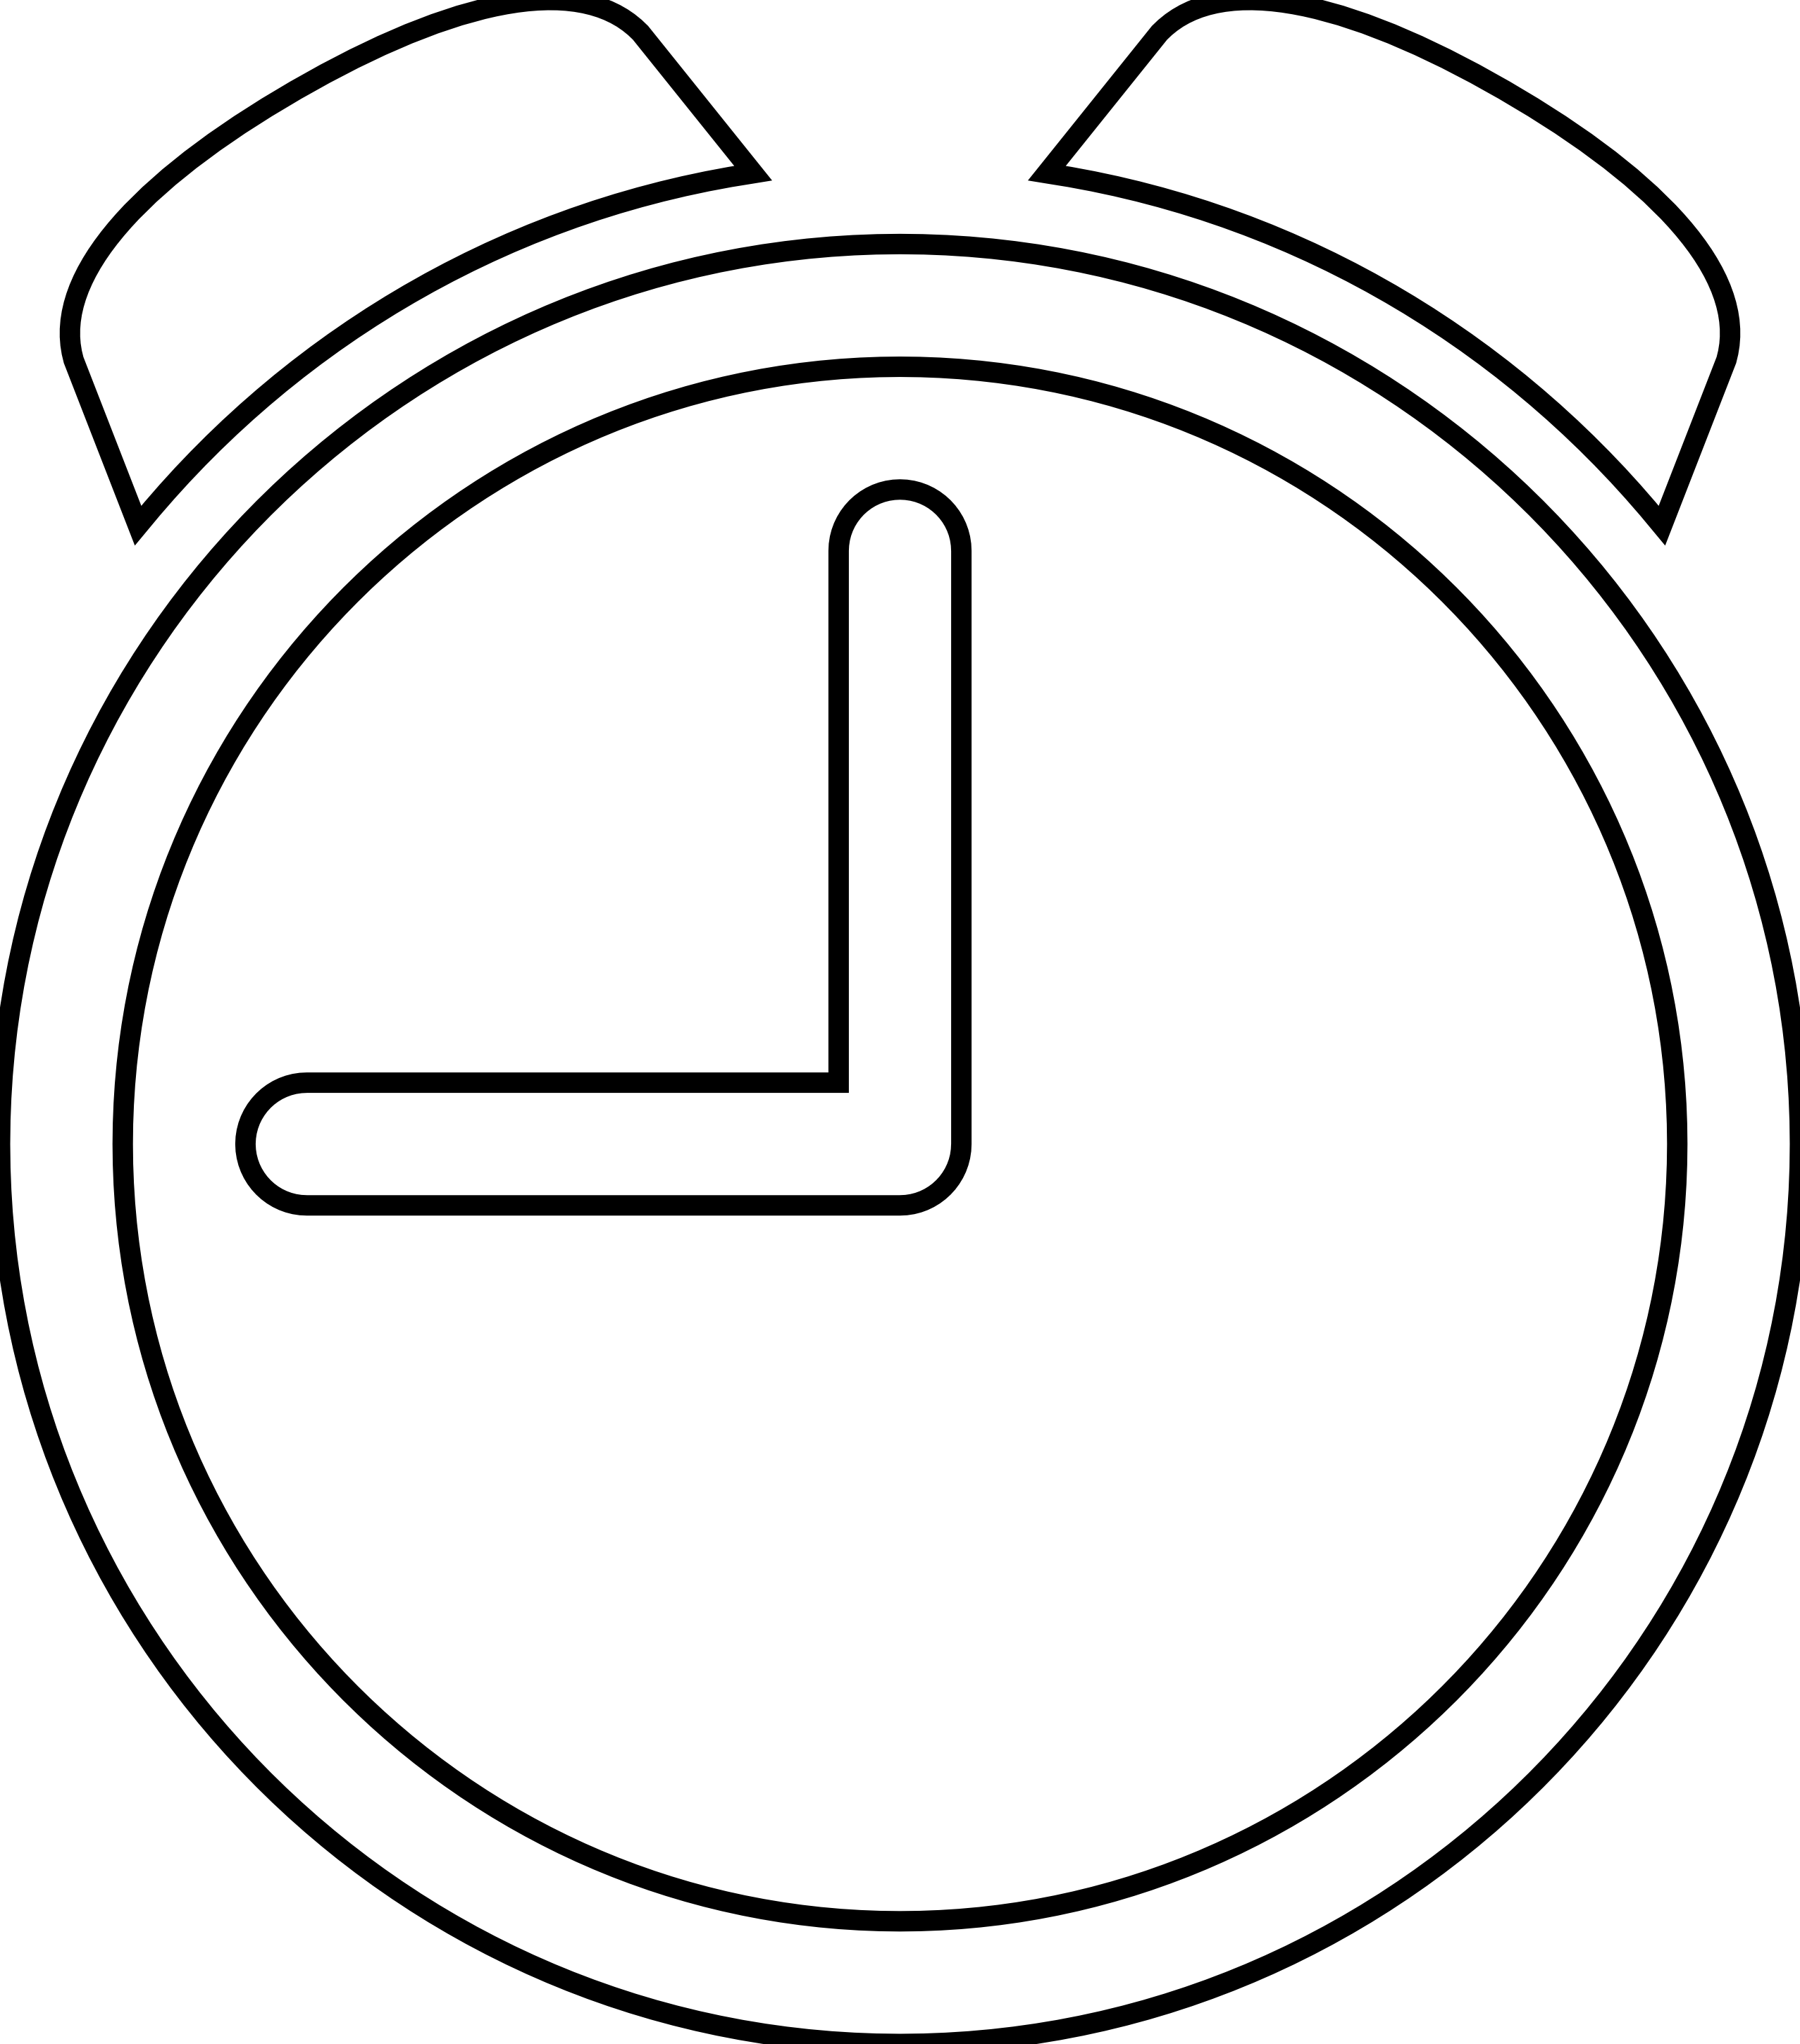 Clock line drawing at. Nickel clipart black and white